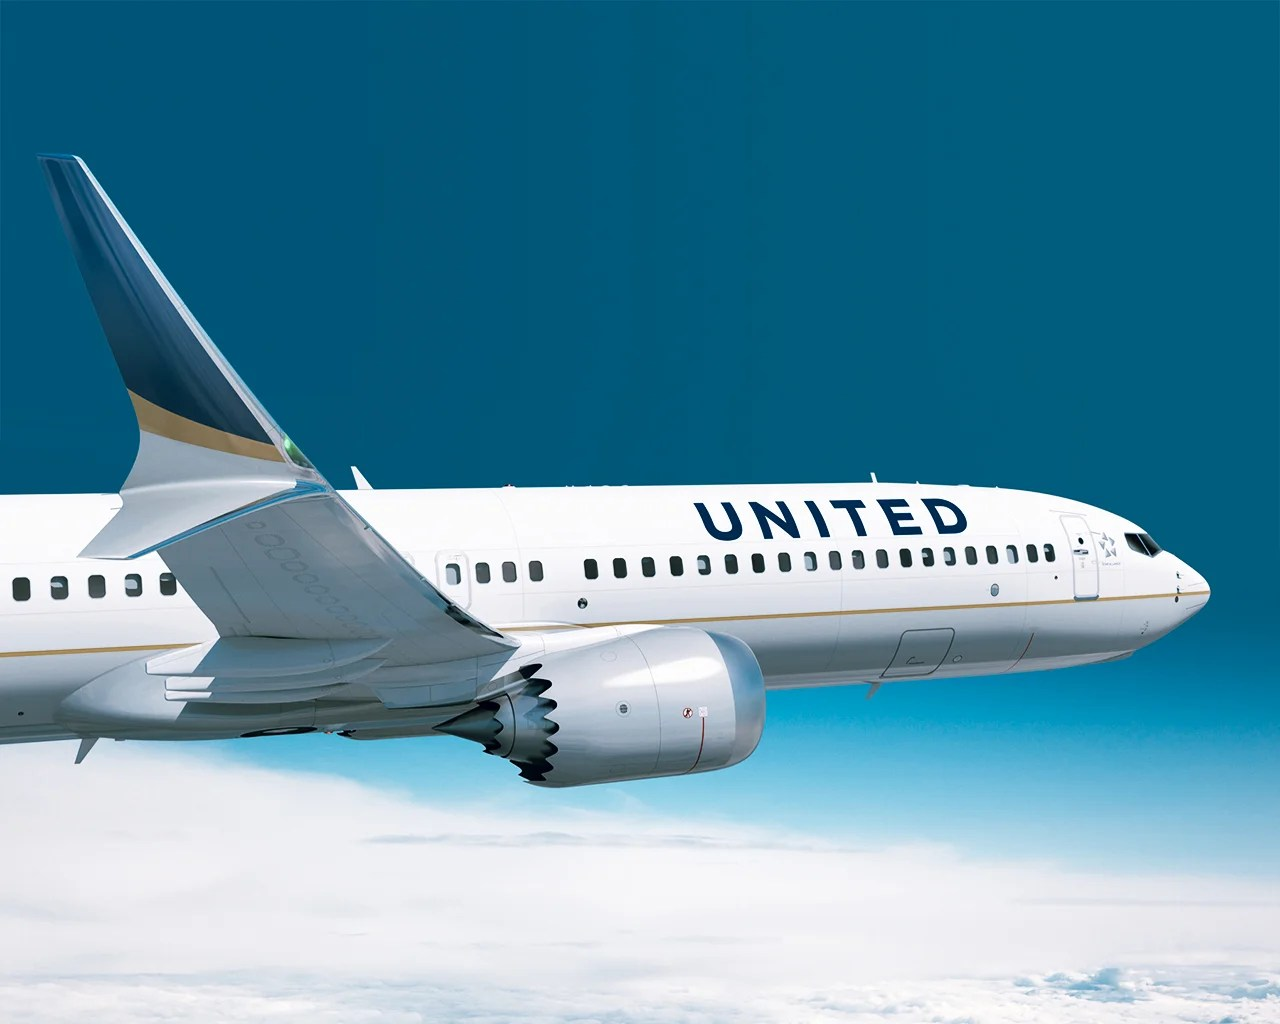 January 2020 Wallpaper Calendar 1280x1024 What Is United Airlines Elite Status Worth in 2019?